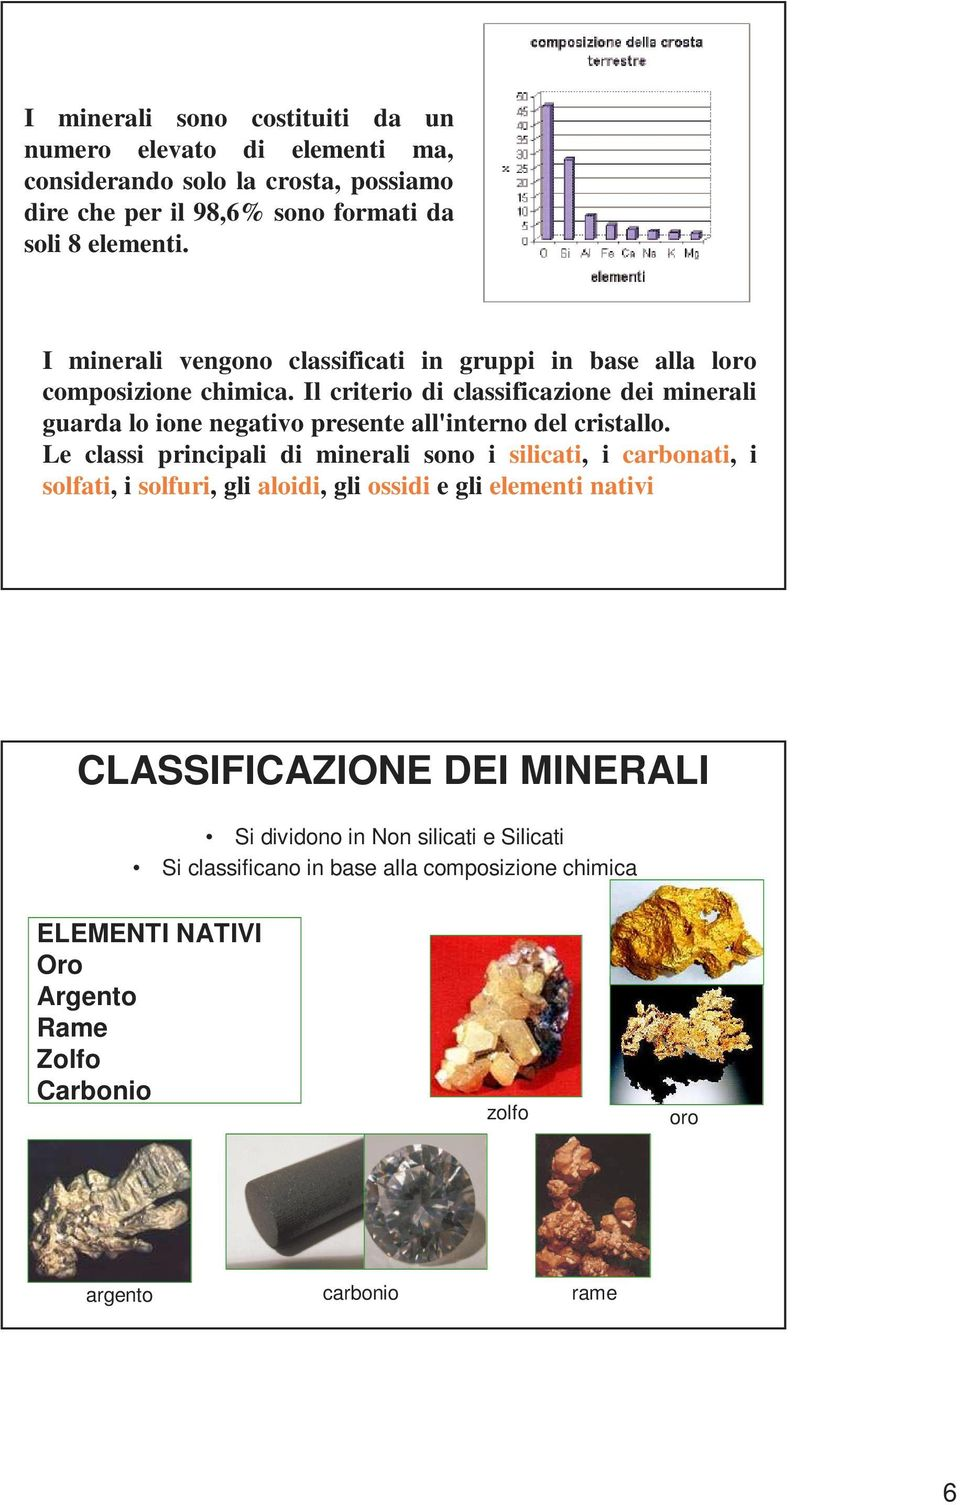 Il criterio di classificazione dei minerali guarda lo ione negativo presente all'interno del cristallo.